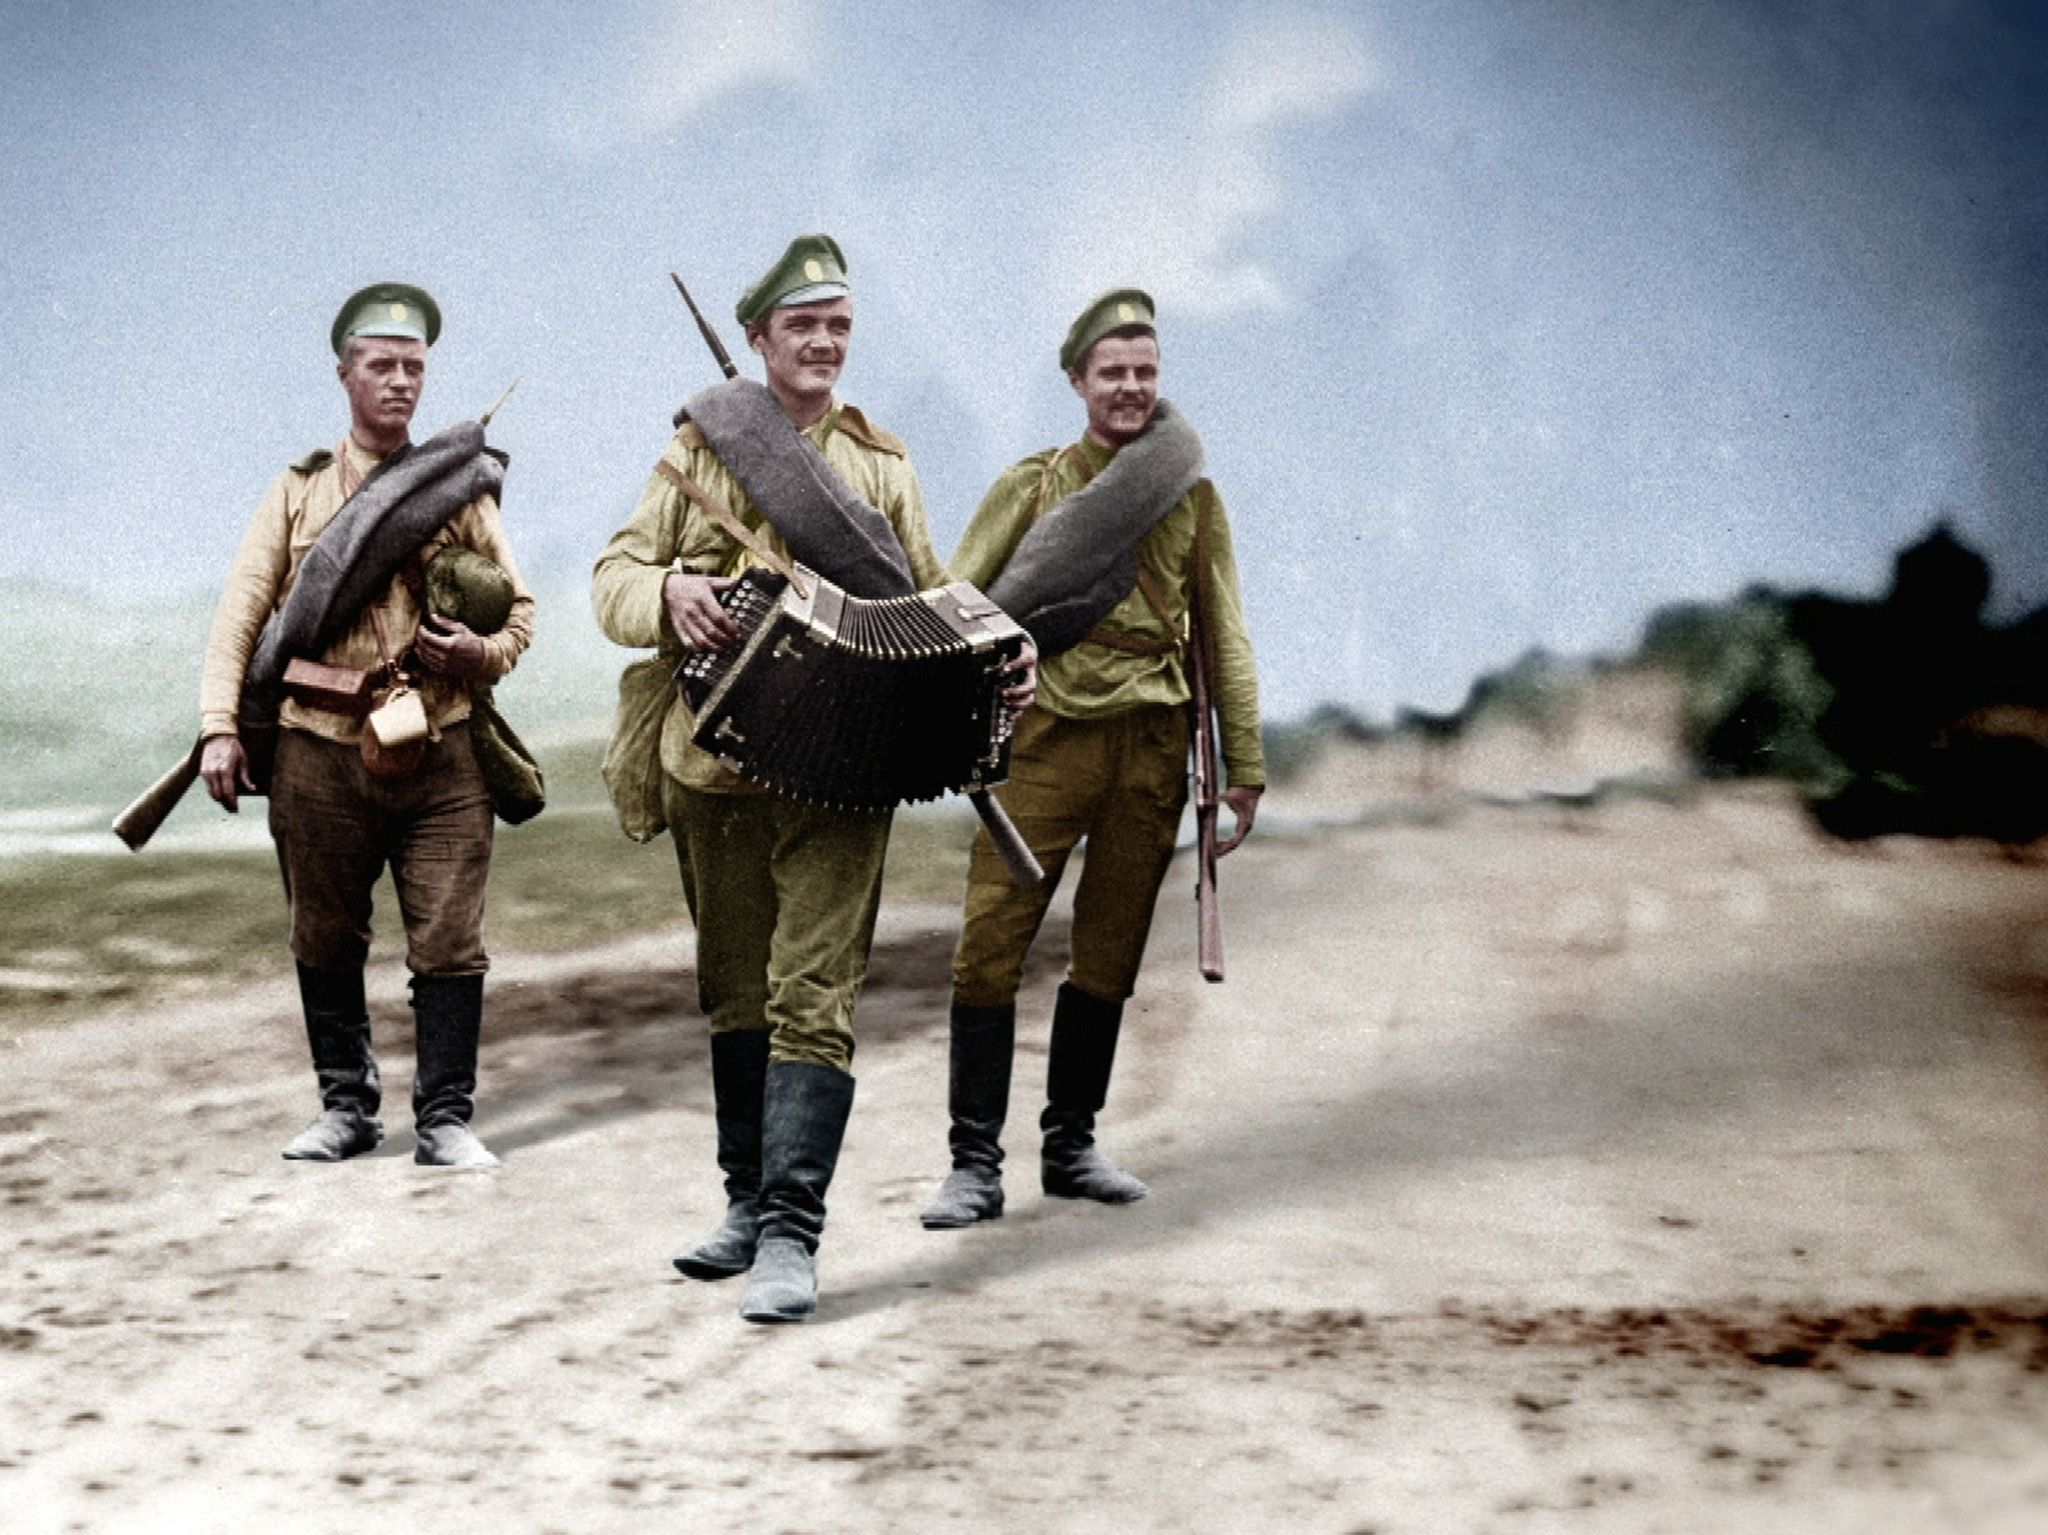 Soldiers follow as another plays accordion.  This image is from 1917: One Year, Two Revolutions. [Photo of the day - February 2019]